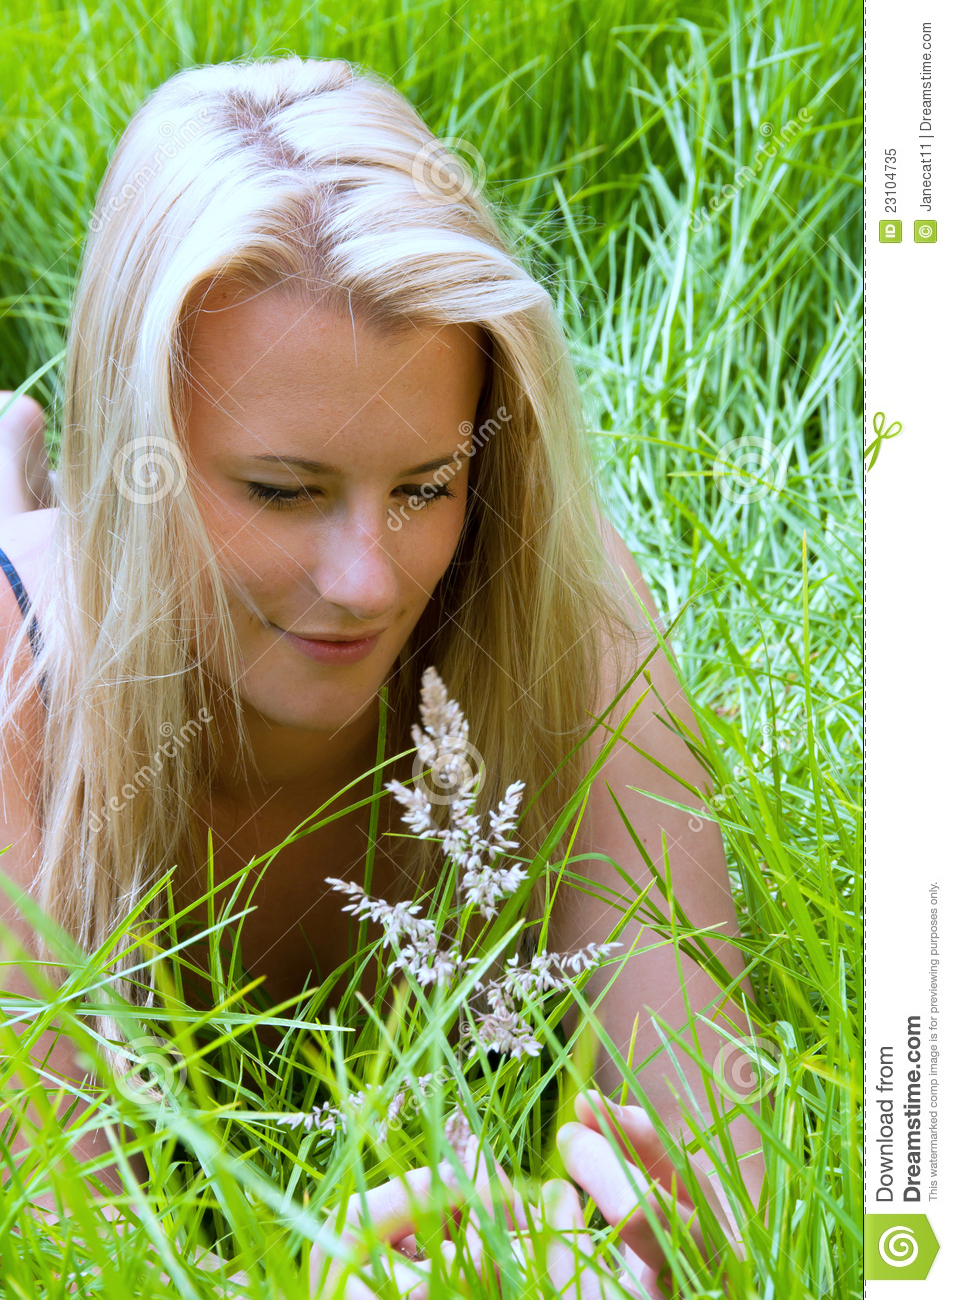 Blonde girl studying grass seed head in meadow